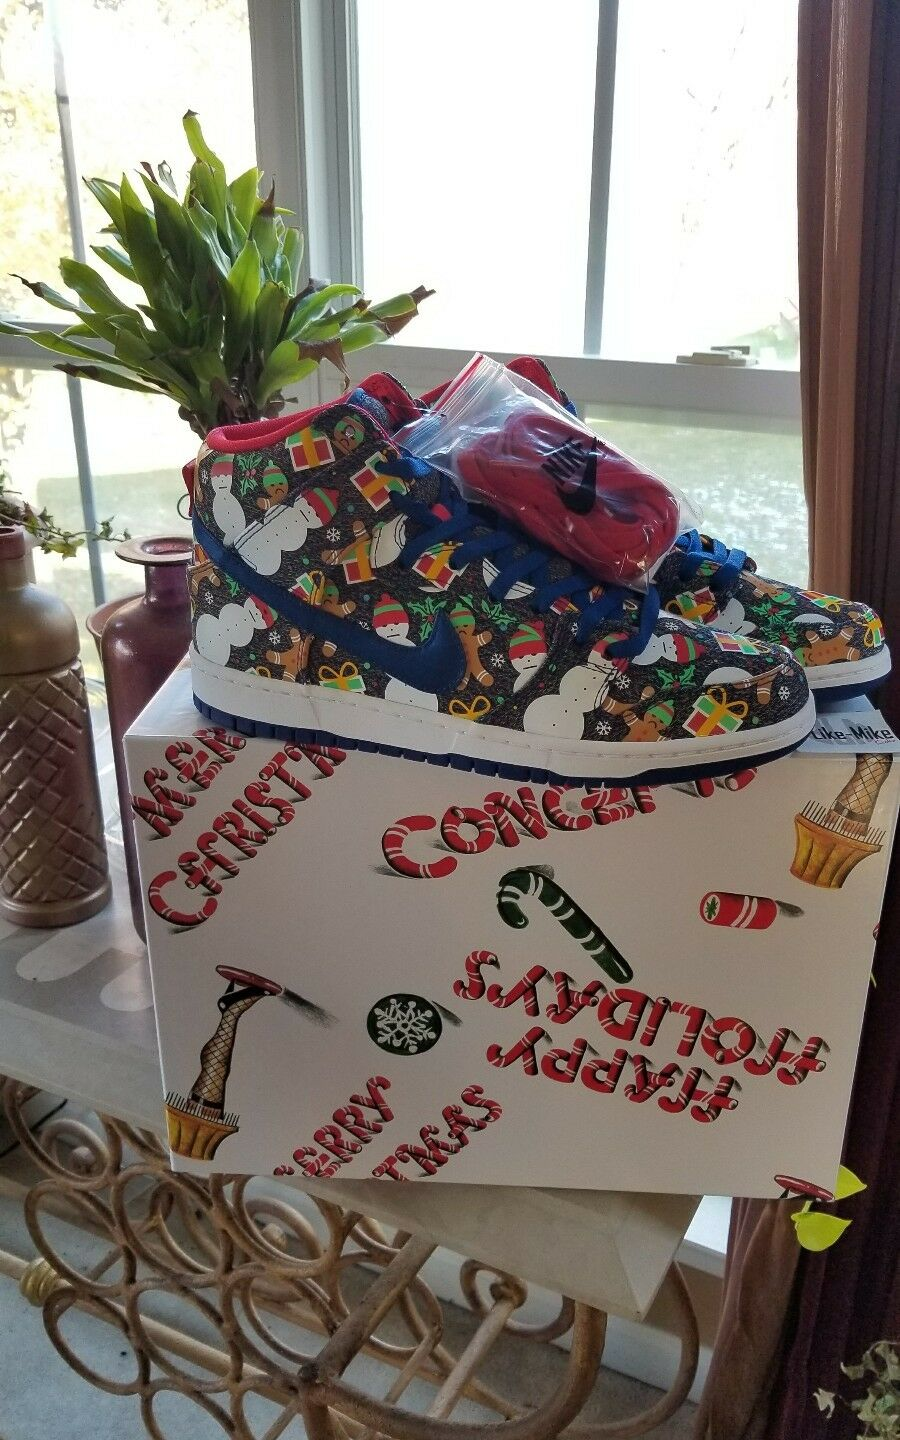 CONCEPTS Nike SB Ugly Sweater Dunk bluee Ribbon   Multi sz 10 Special Packaging